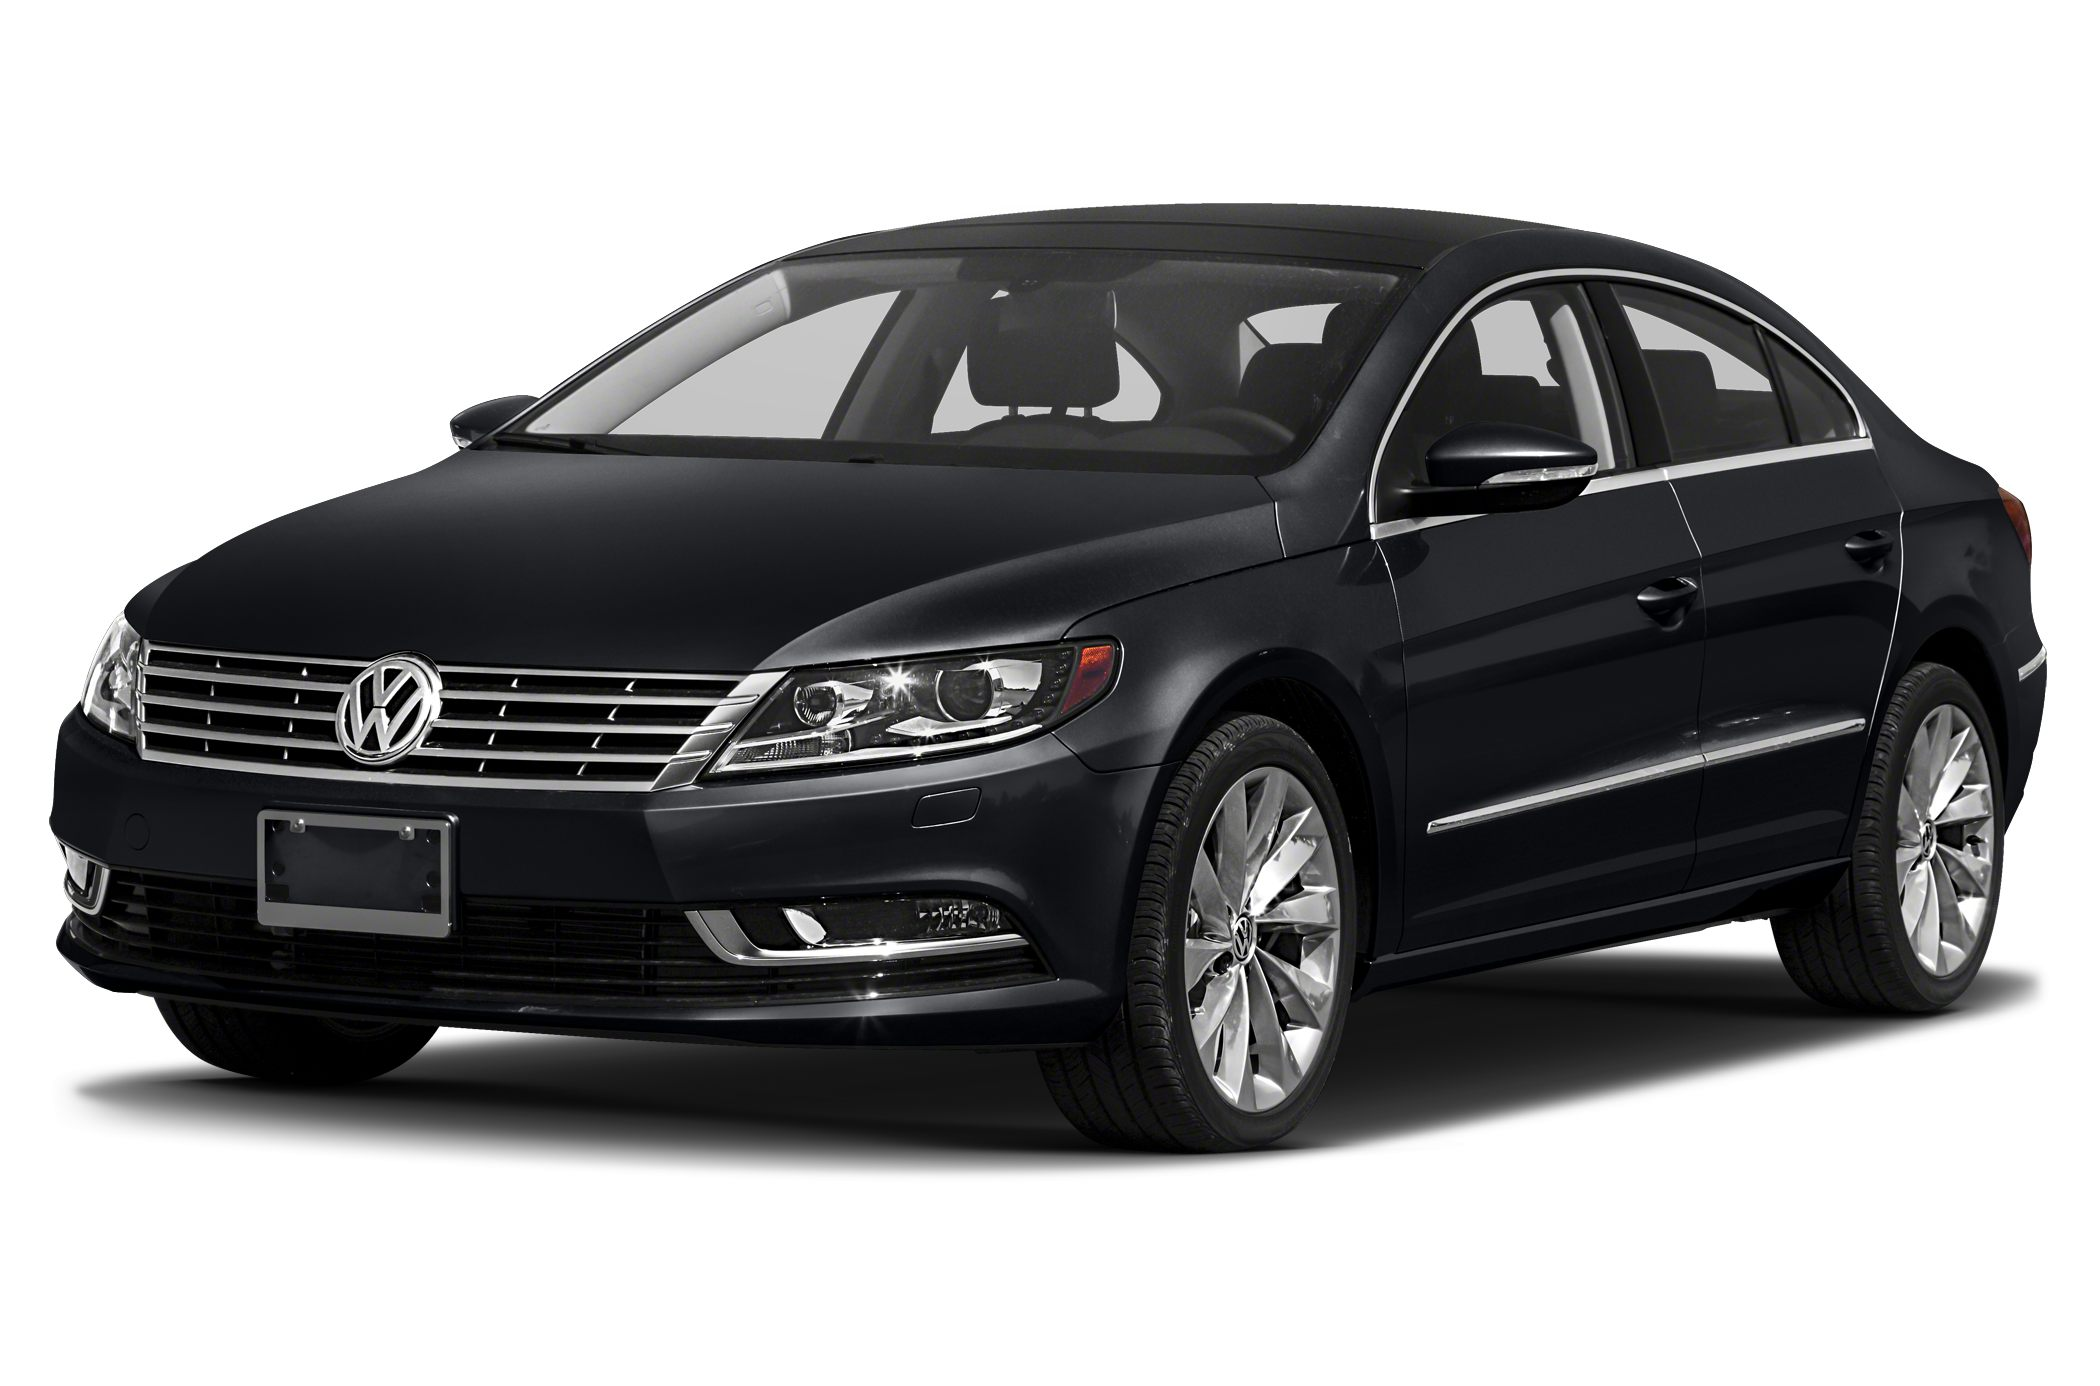 2013 Volkswagen CC 20T Sport Plus Vehicle Detailed Recent Oil Change and Passed Dealer Inspecti